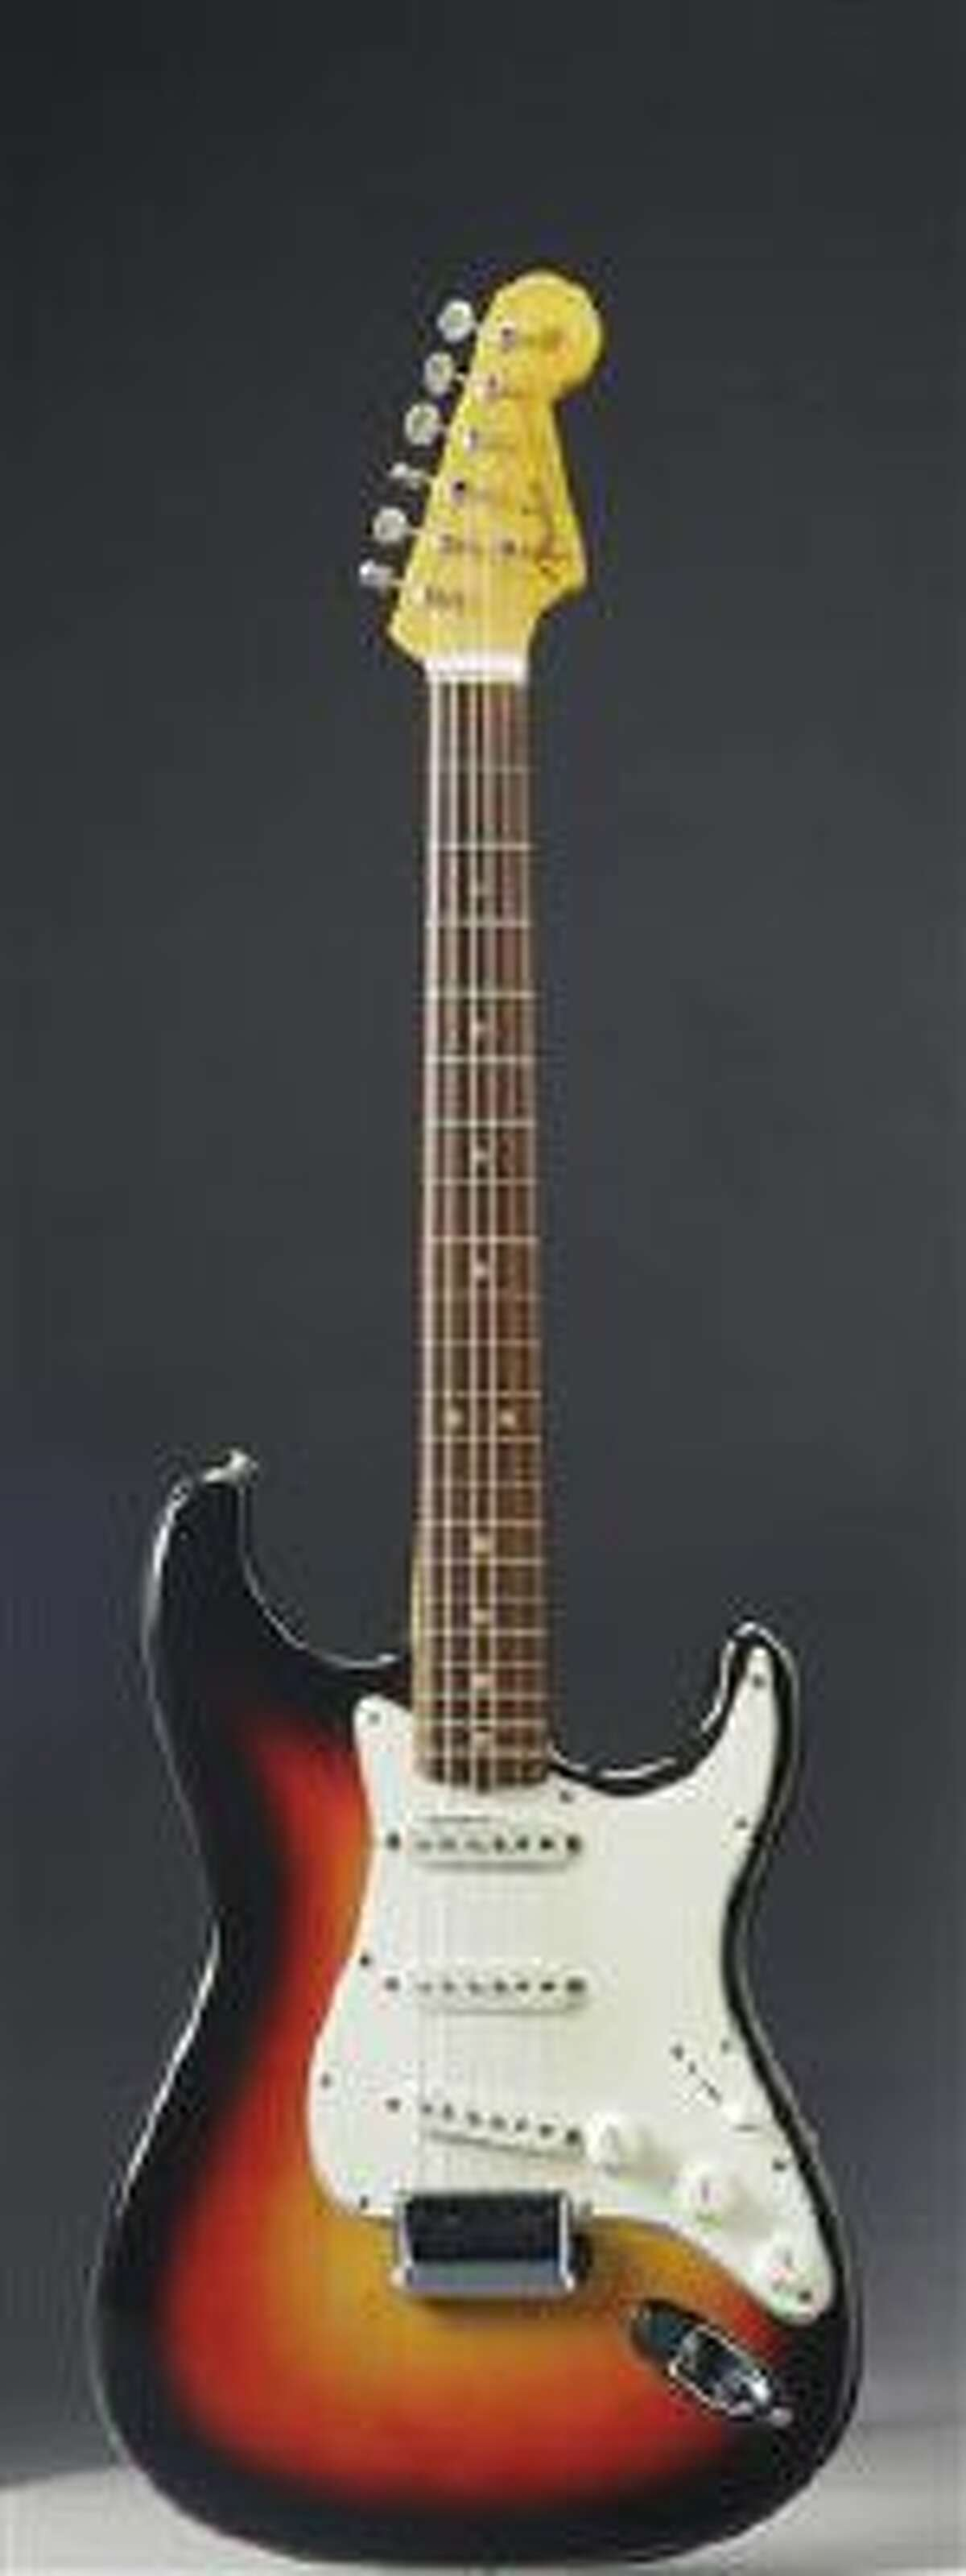 This undated photo provided by Christie's shows the Fender Stratocaster a young Bob Dylan played at the historic 1965 Newport Folk Festival. On Dec. 6, 2013, it could bring as much as half a million dollars when it comes up for auction at Christie's New York.